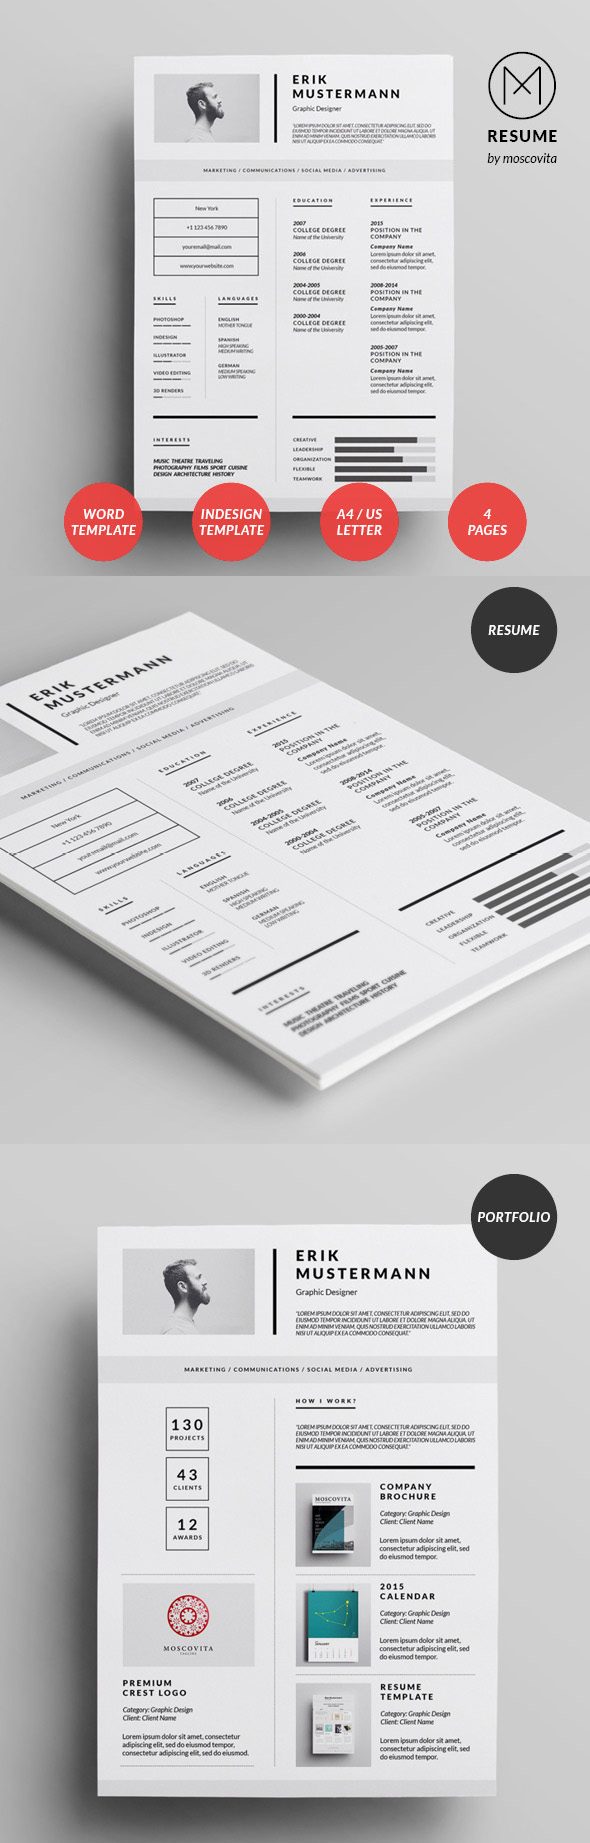 Best Modern Resume Template 53